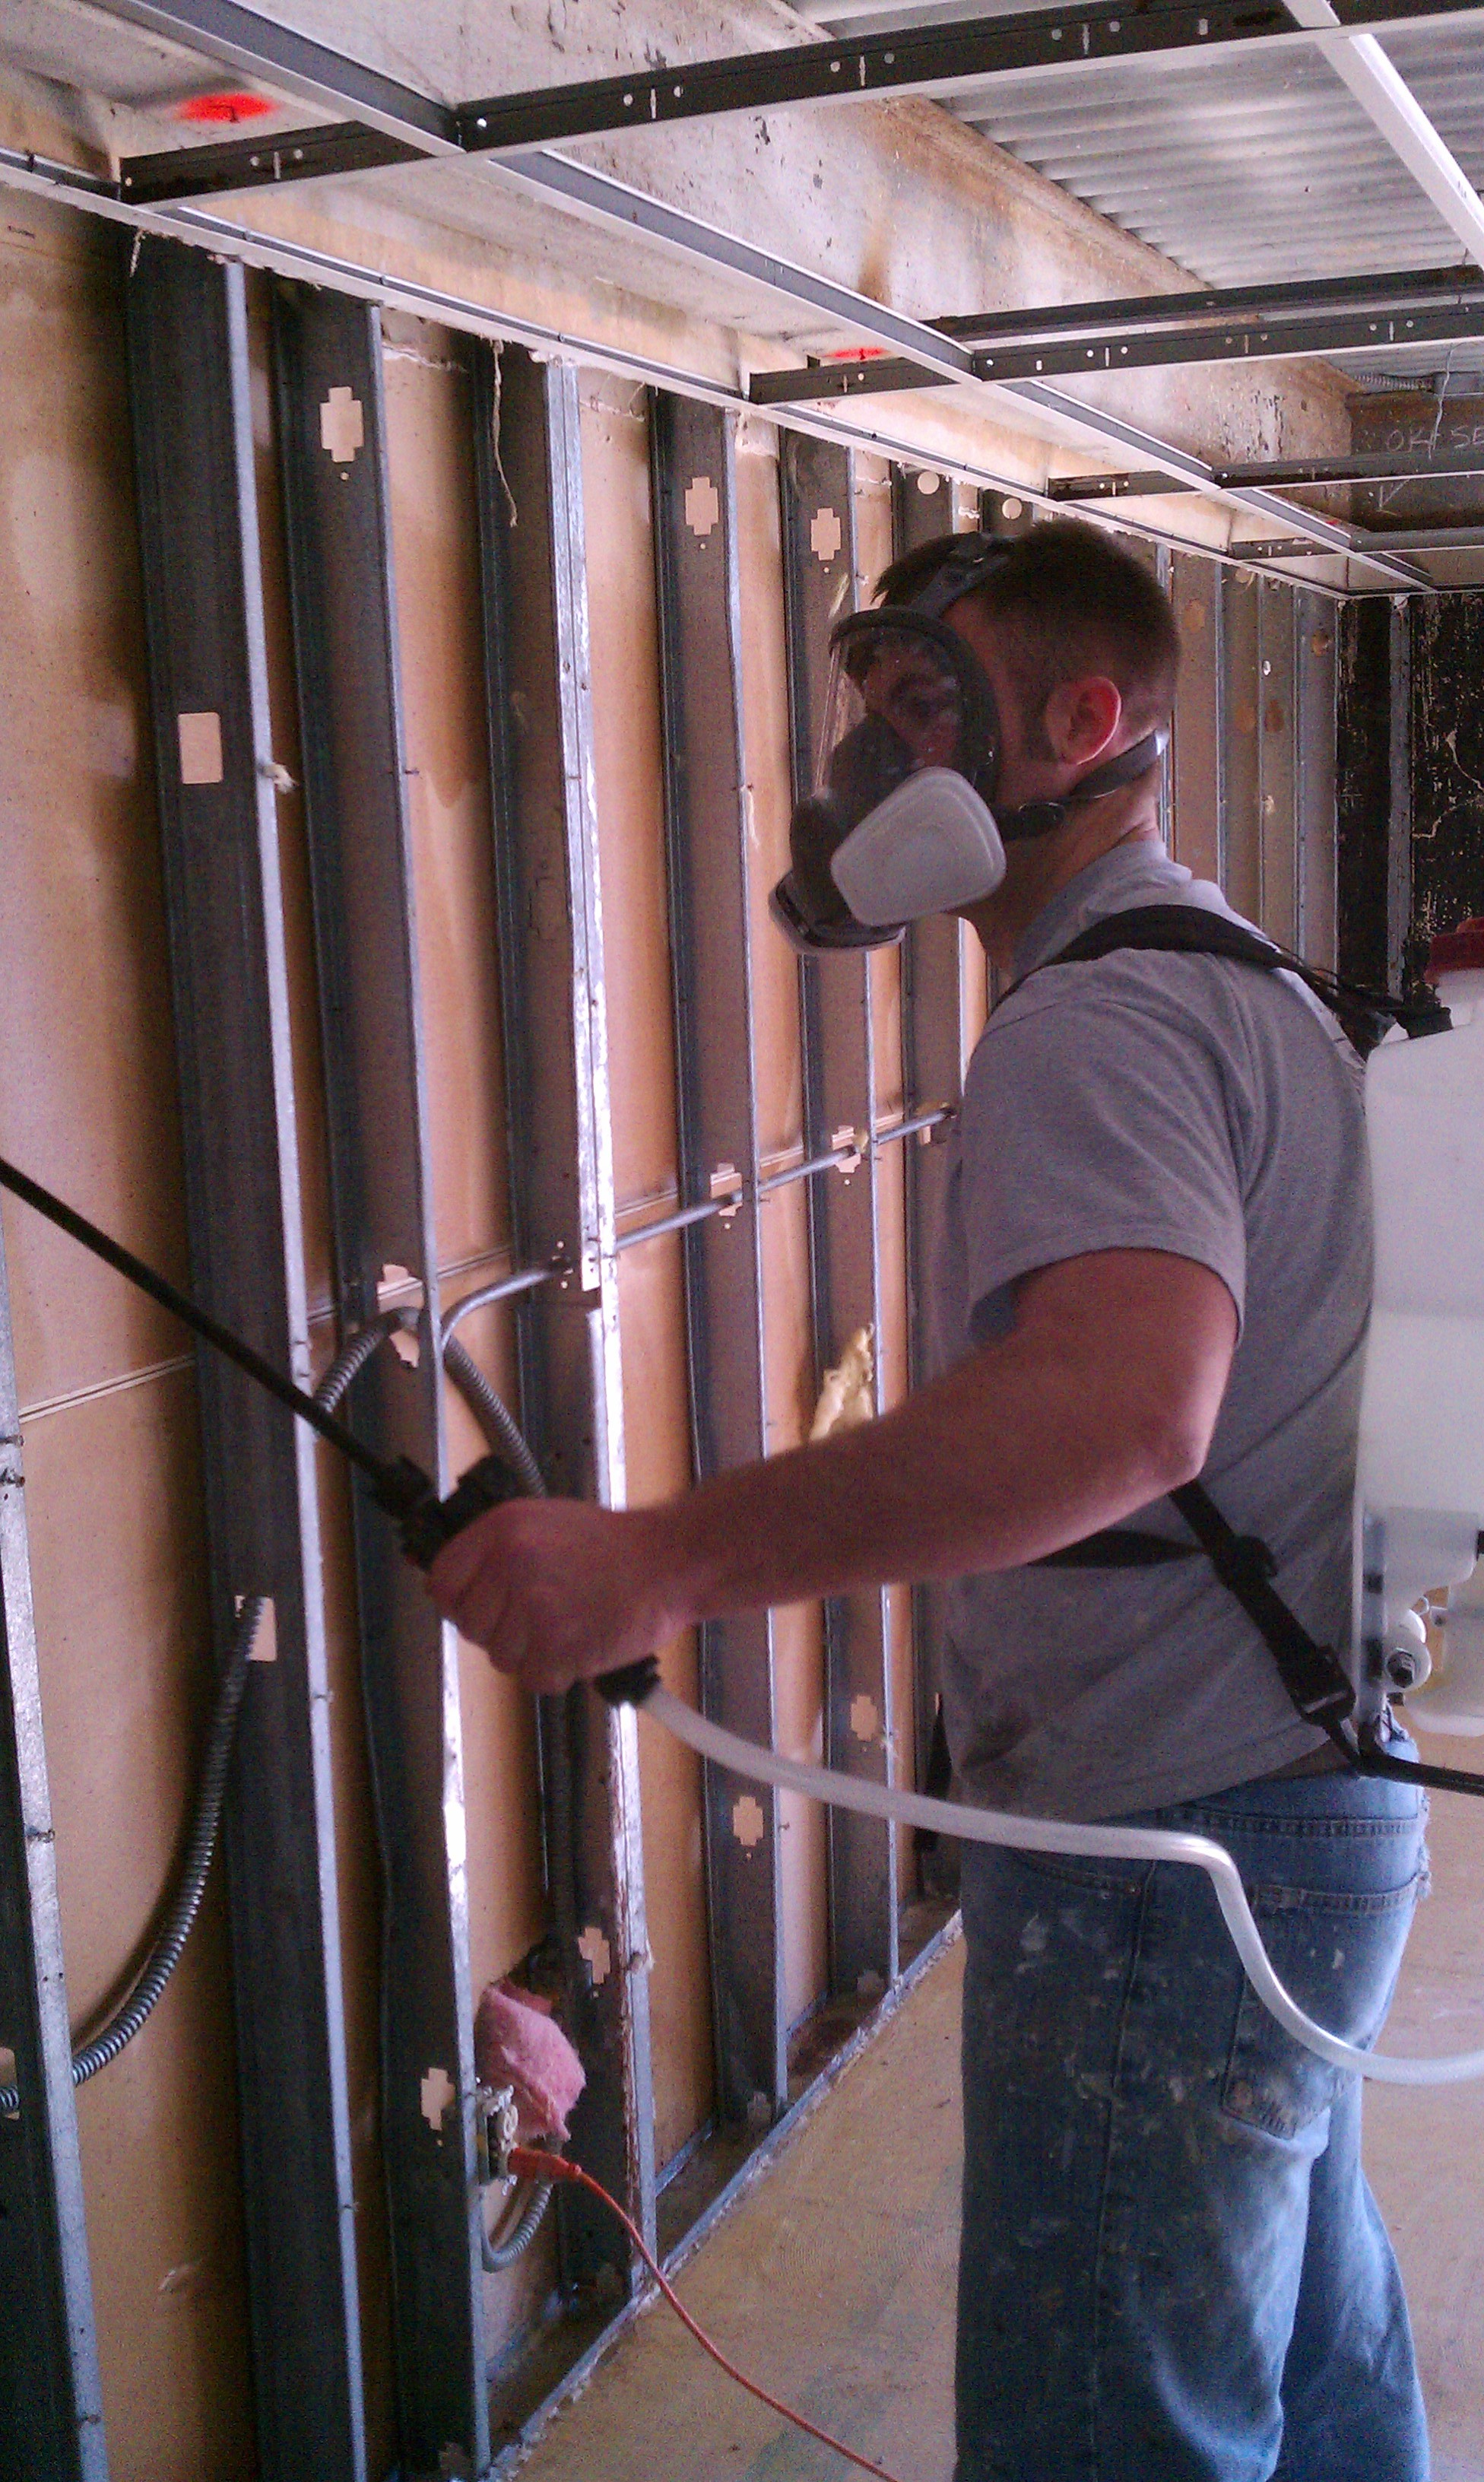 Help Wanted Experienced Painters Needed Kcnp